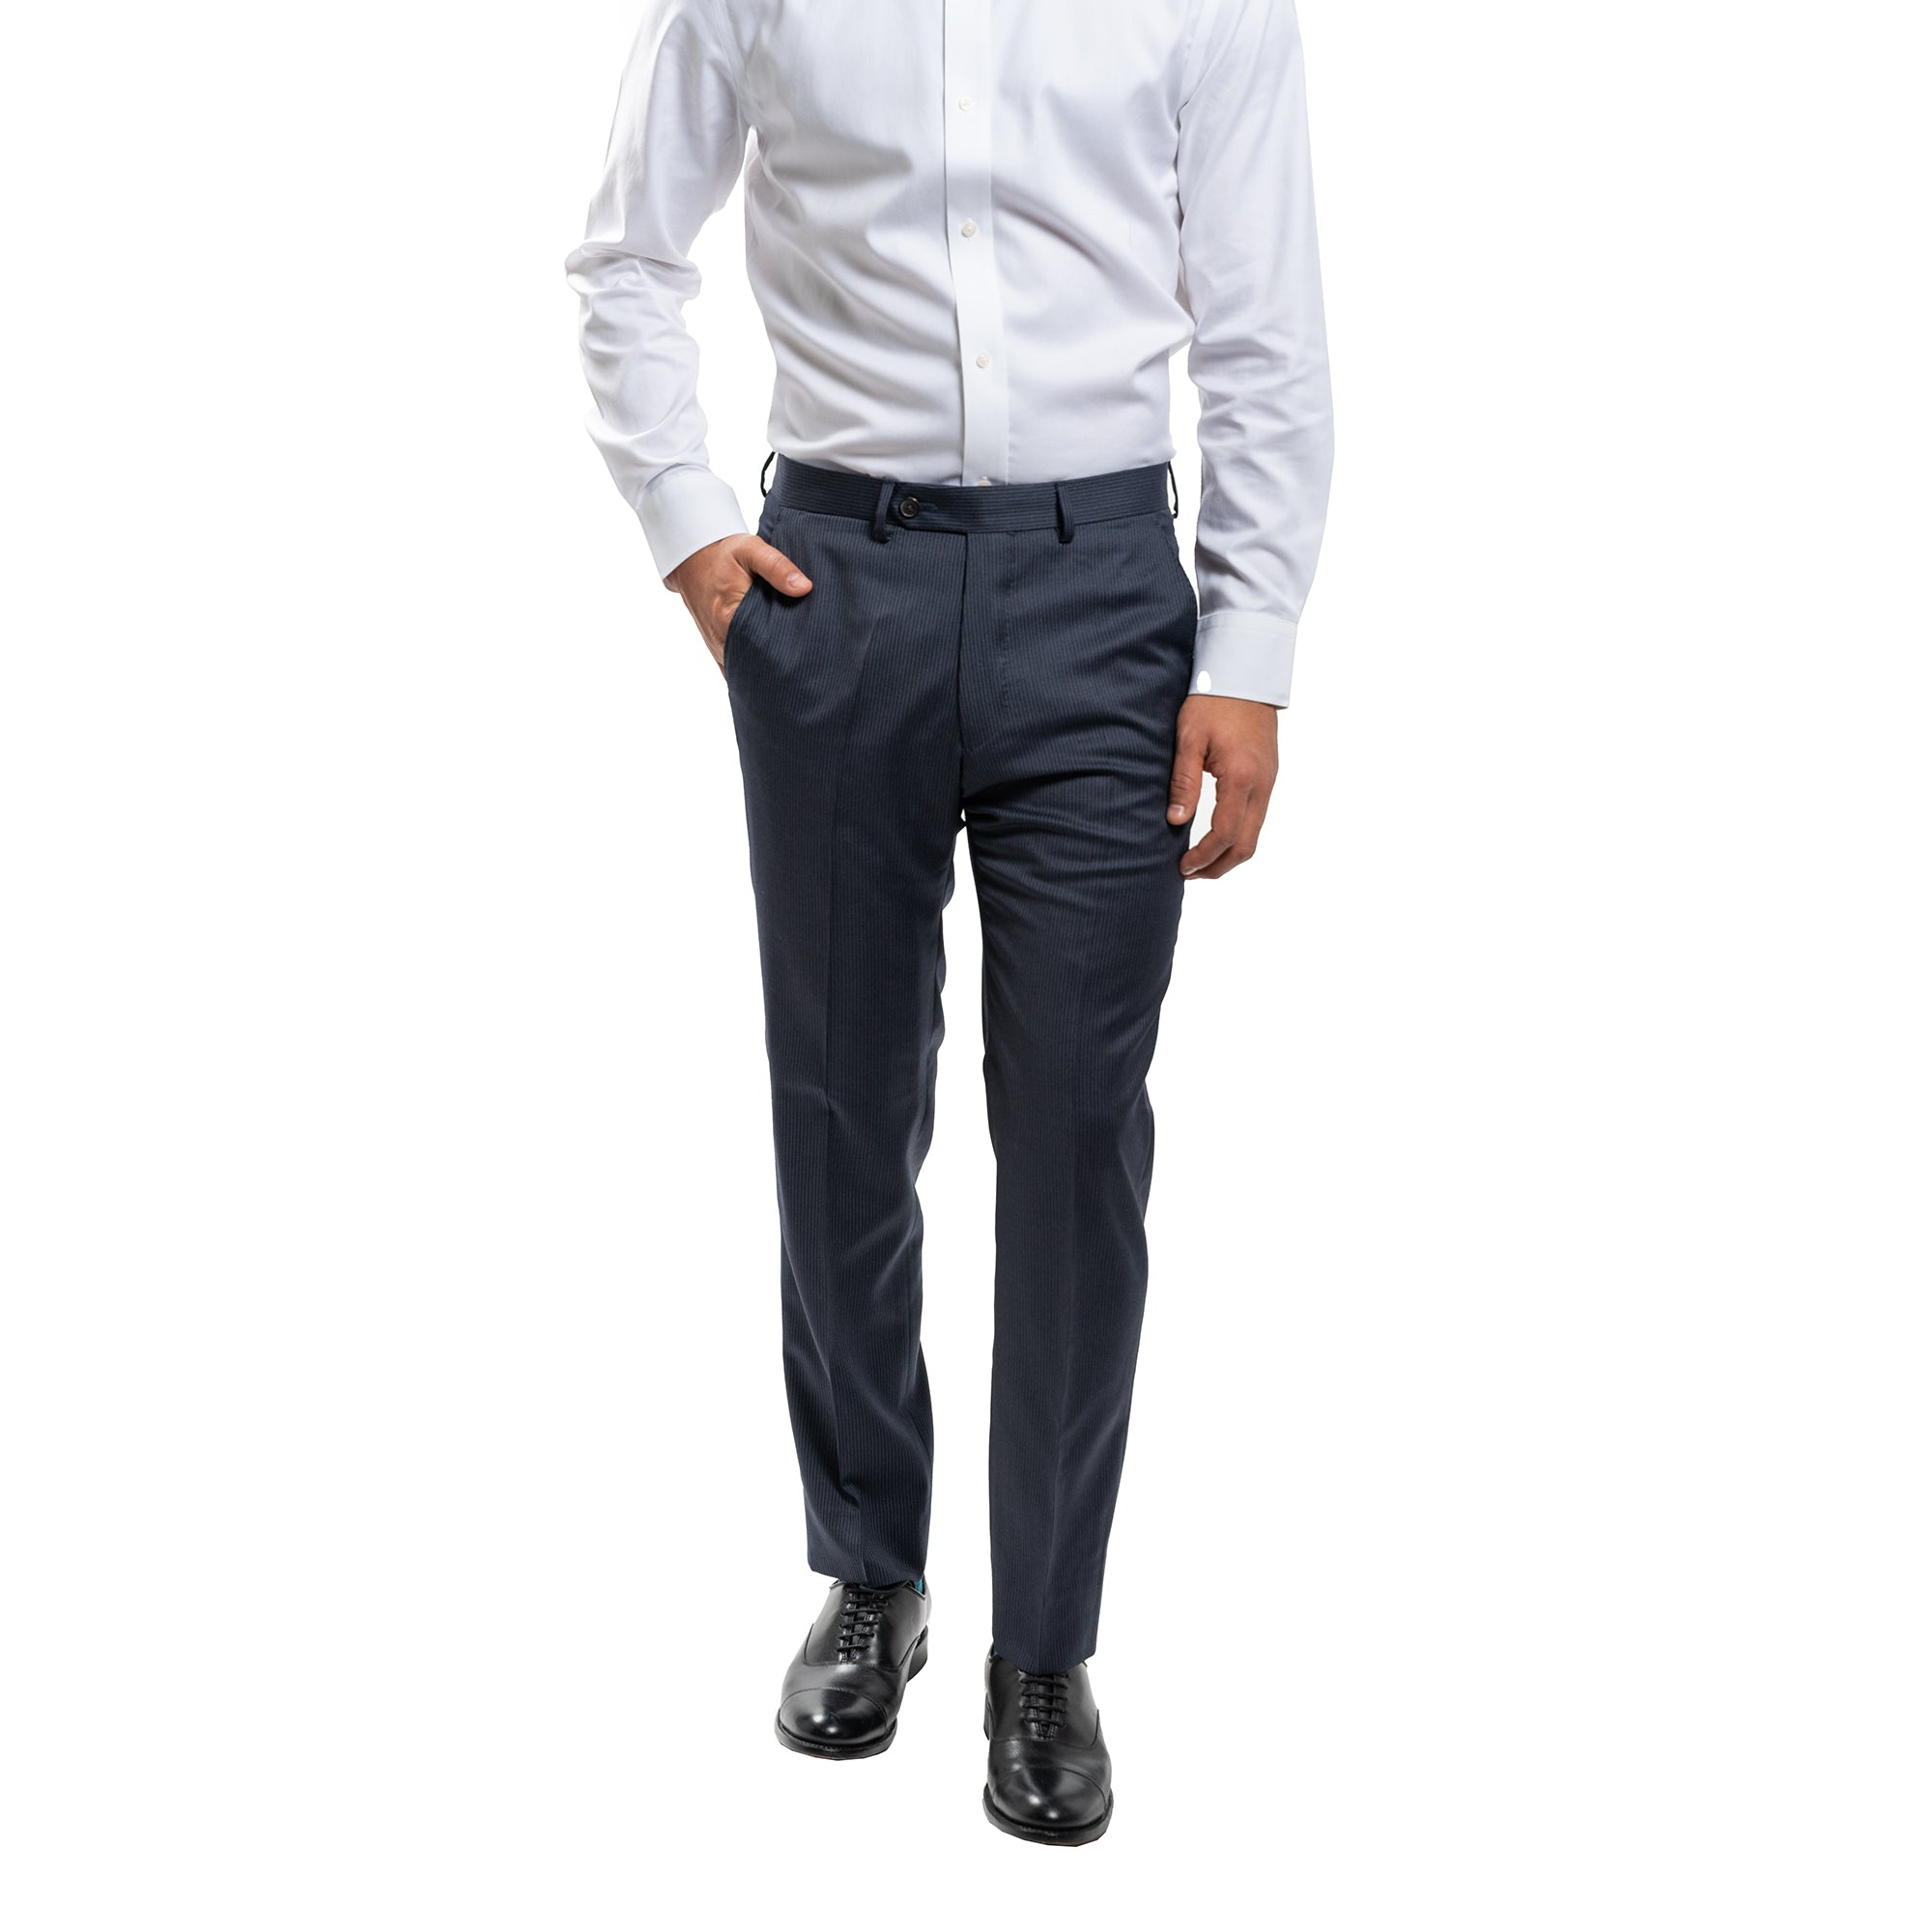 Essex Dress Pants - Navy Pinstripe